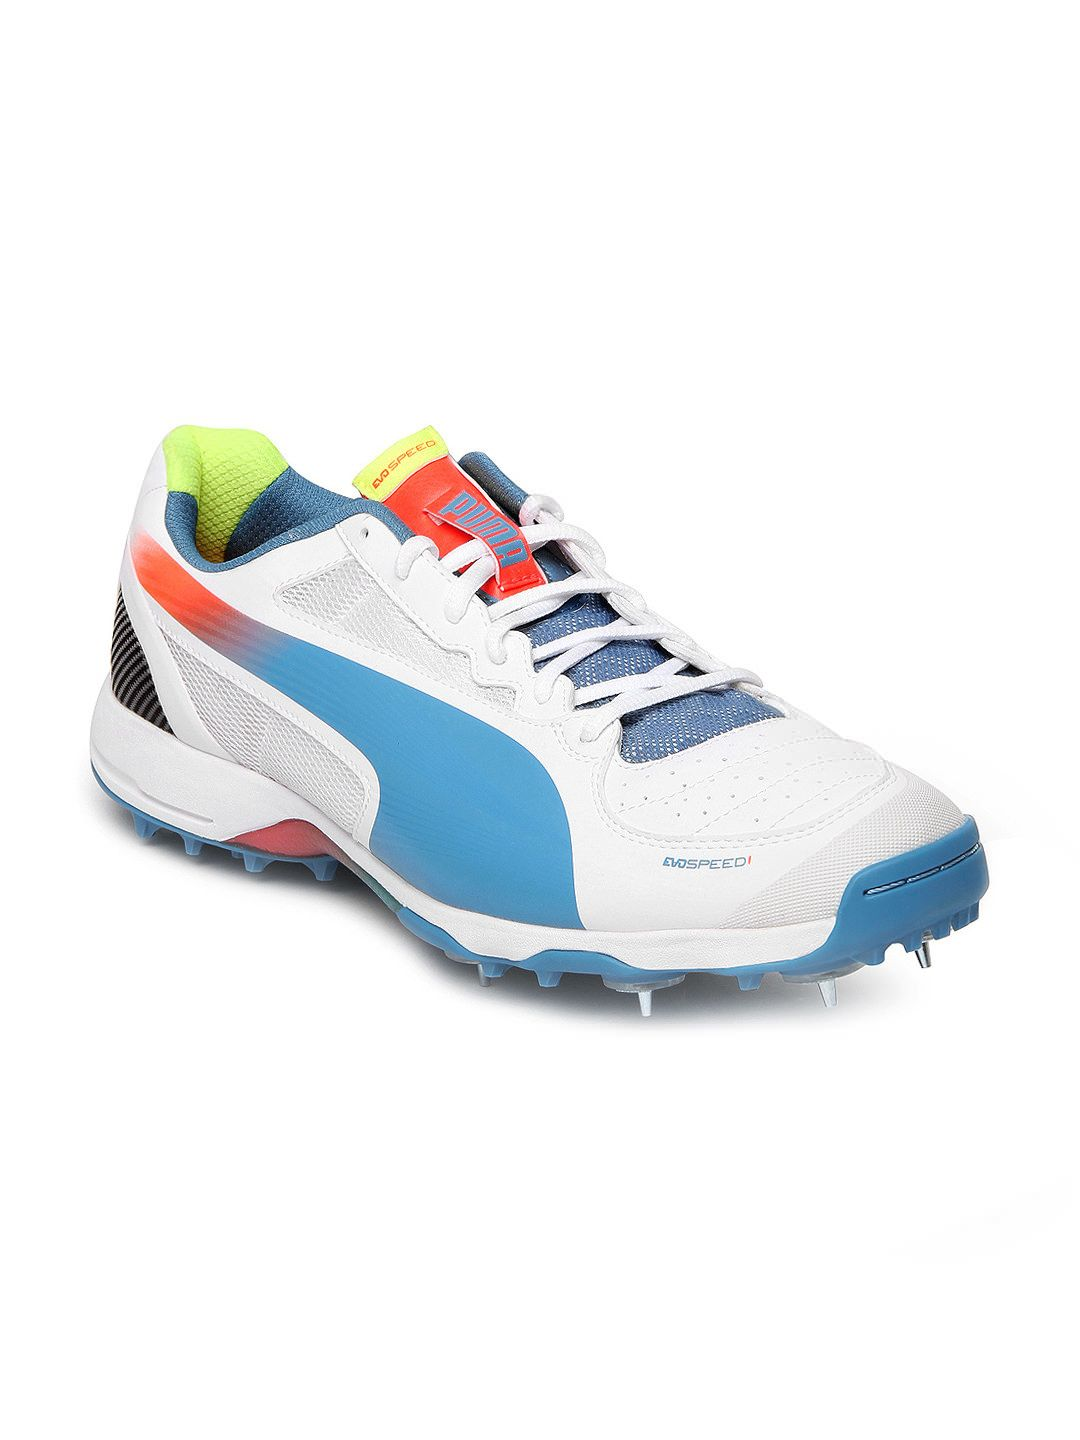 white blue orange evospeed cricket spike 1 2